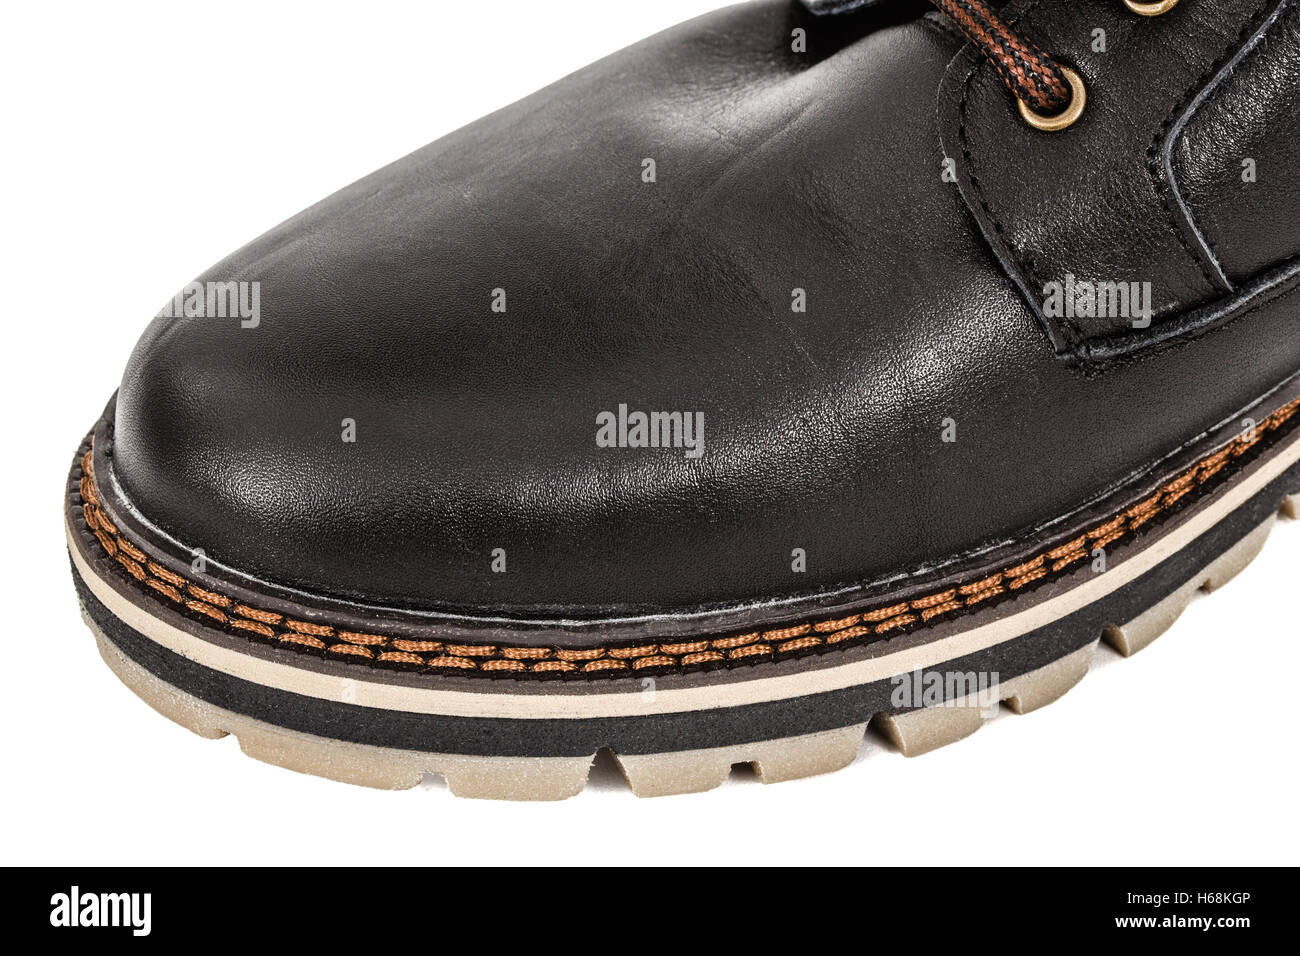 The shoe of needled strong thread, stitch of seam close-up, isolated on white background - Stock Image